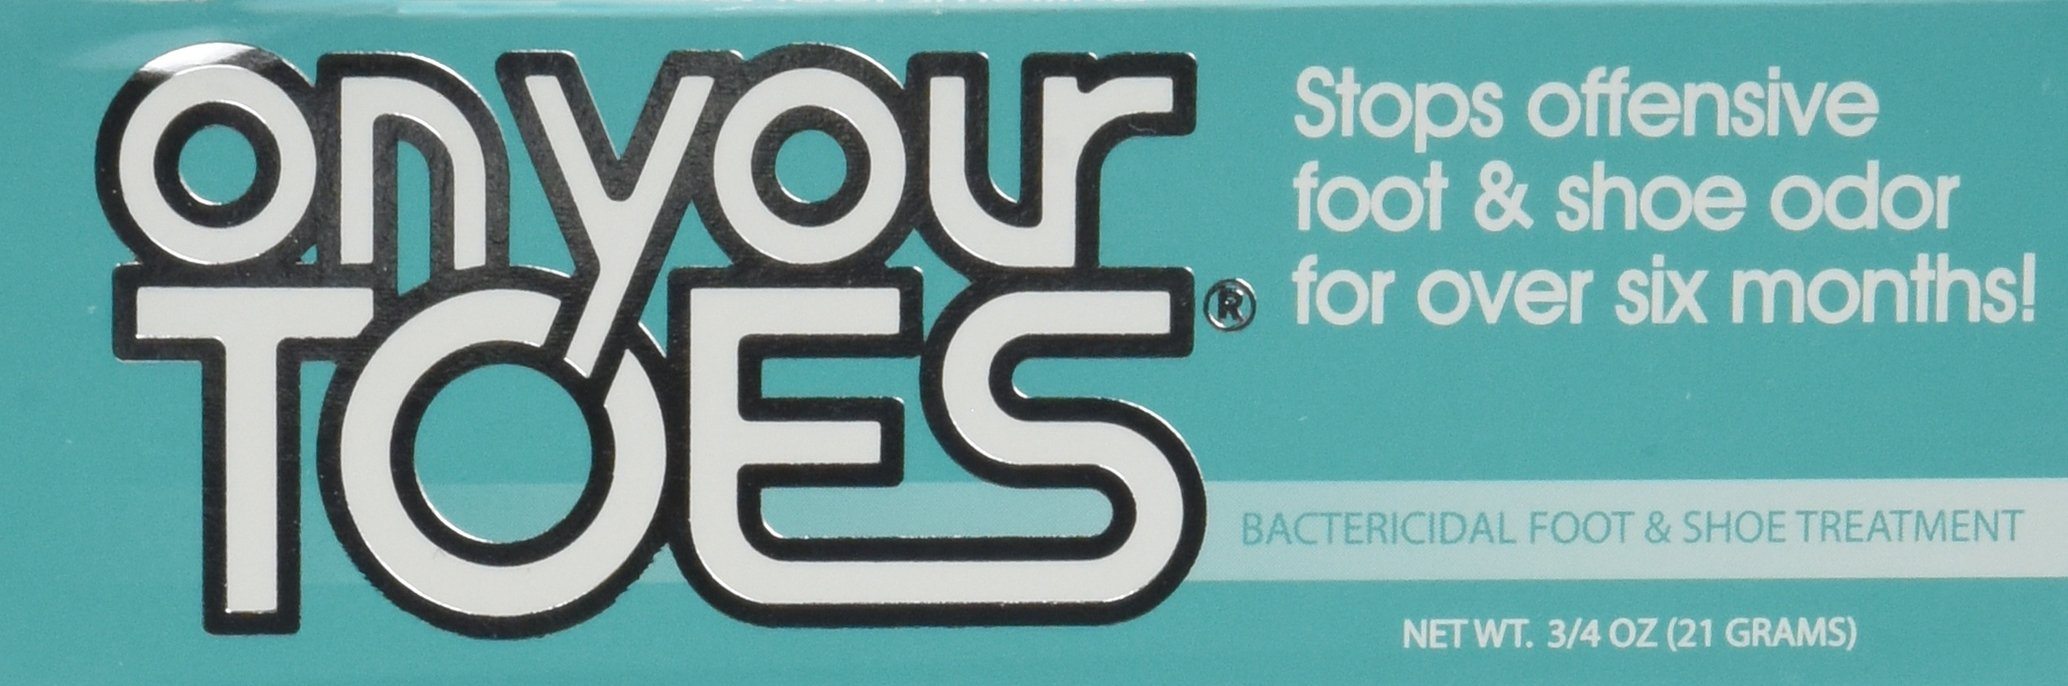 On Your Toes Foot Bactericide Powder - Eliminates Foot Odor for Six Months, 3/4 oz - Two Pack by Fraser Laboratories